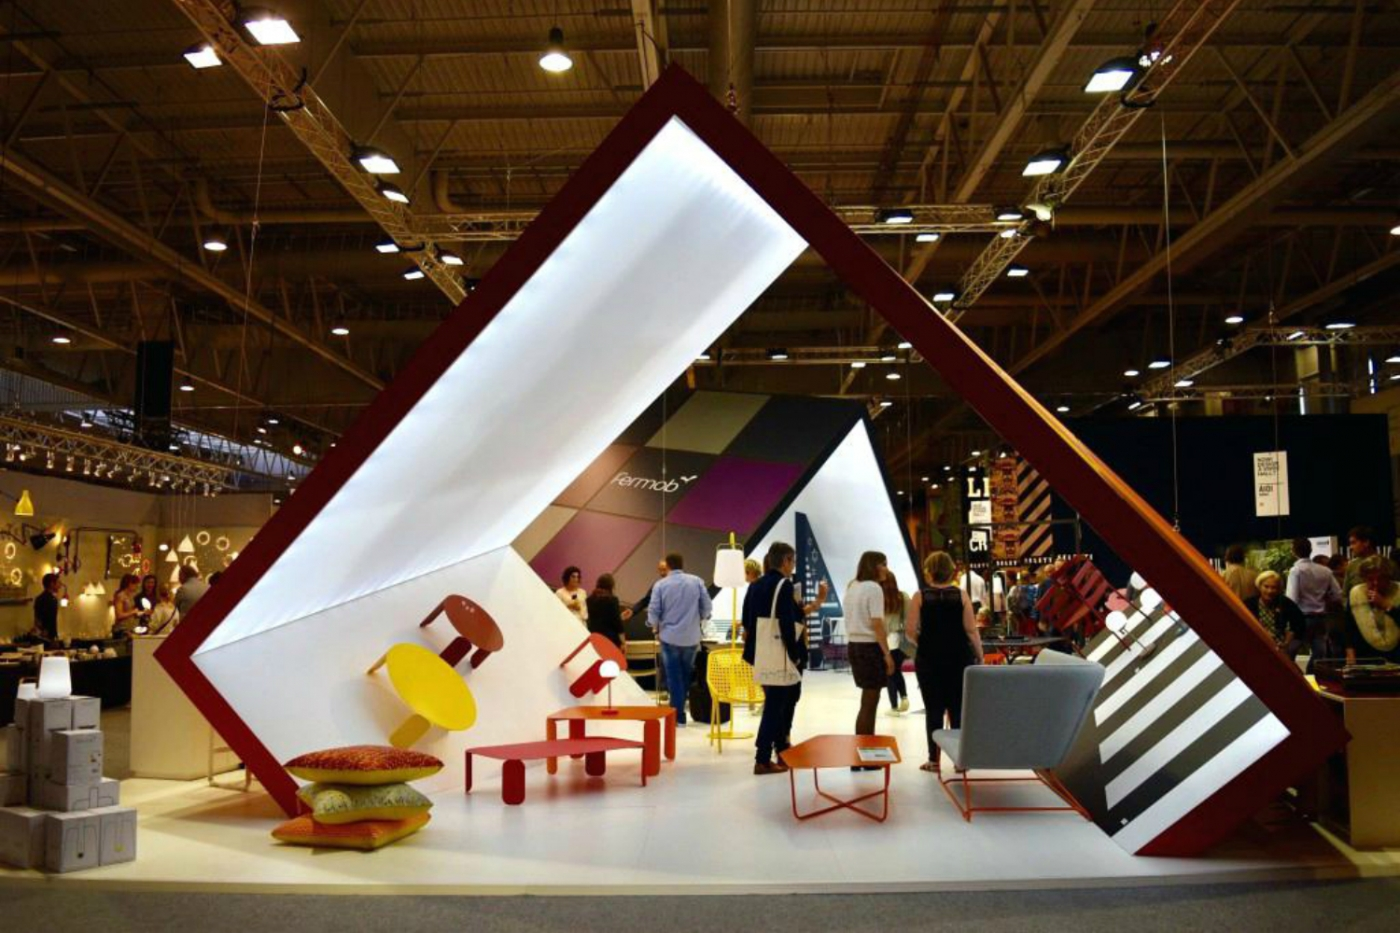 paris design week Paris Design Week, Design Events You Won't Want To Miss PDW Design Events You Wont Want To Miss feature 1400x933